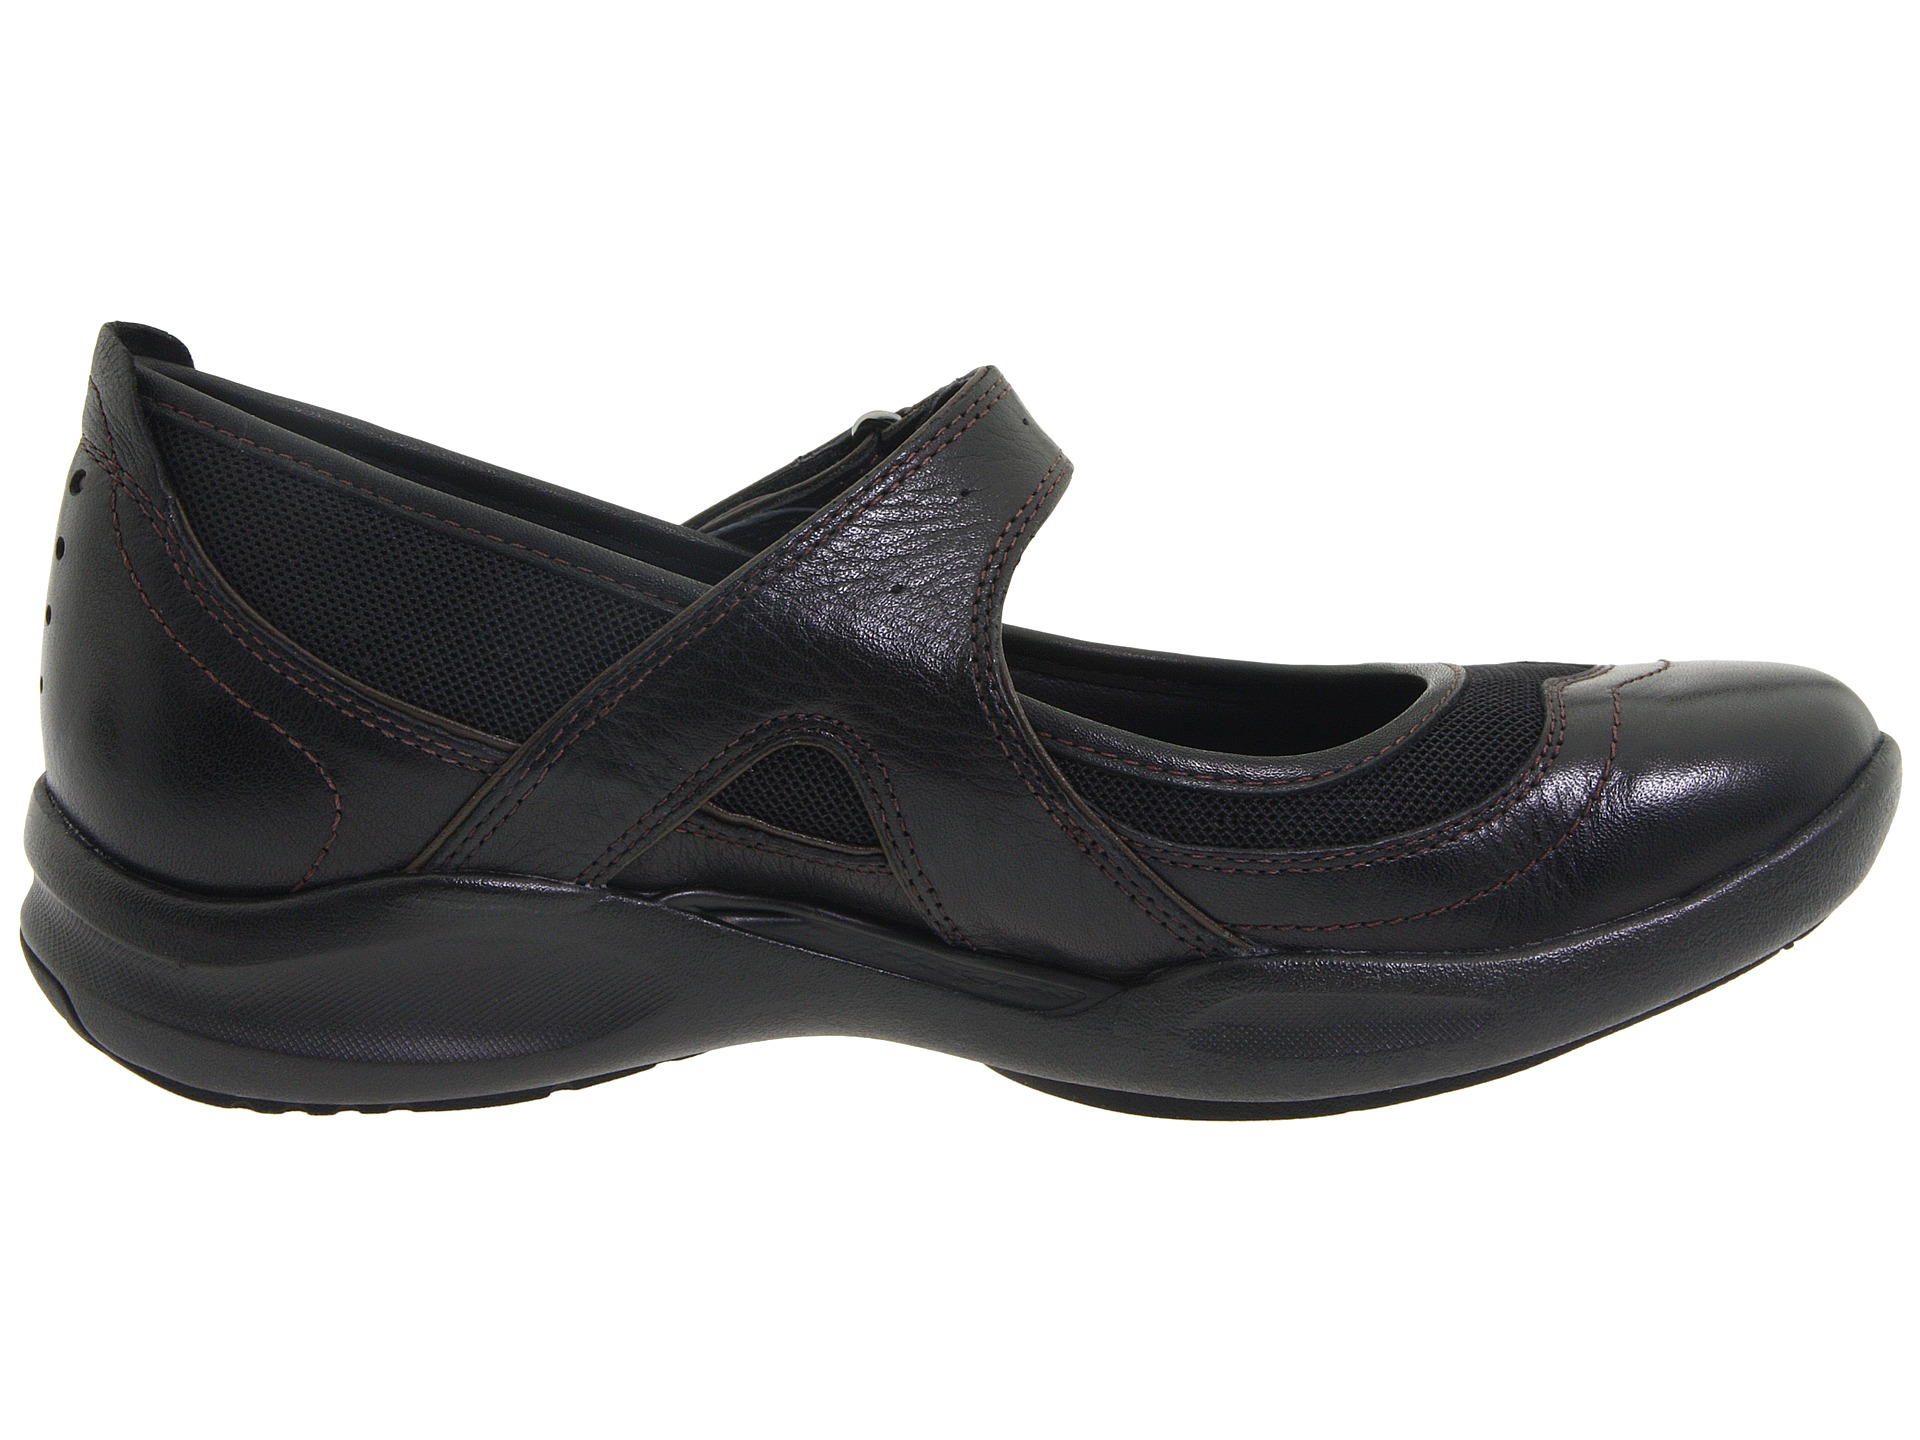 8e55dd340735c2 Women clothing stores – Zappos clarks womens shoes